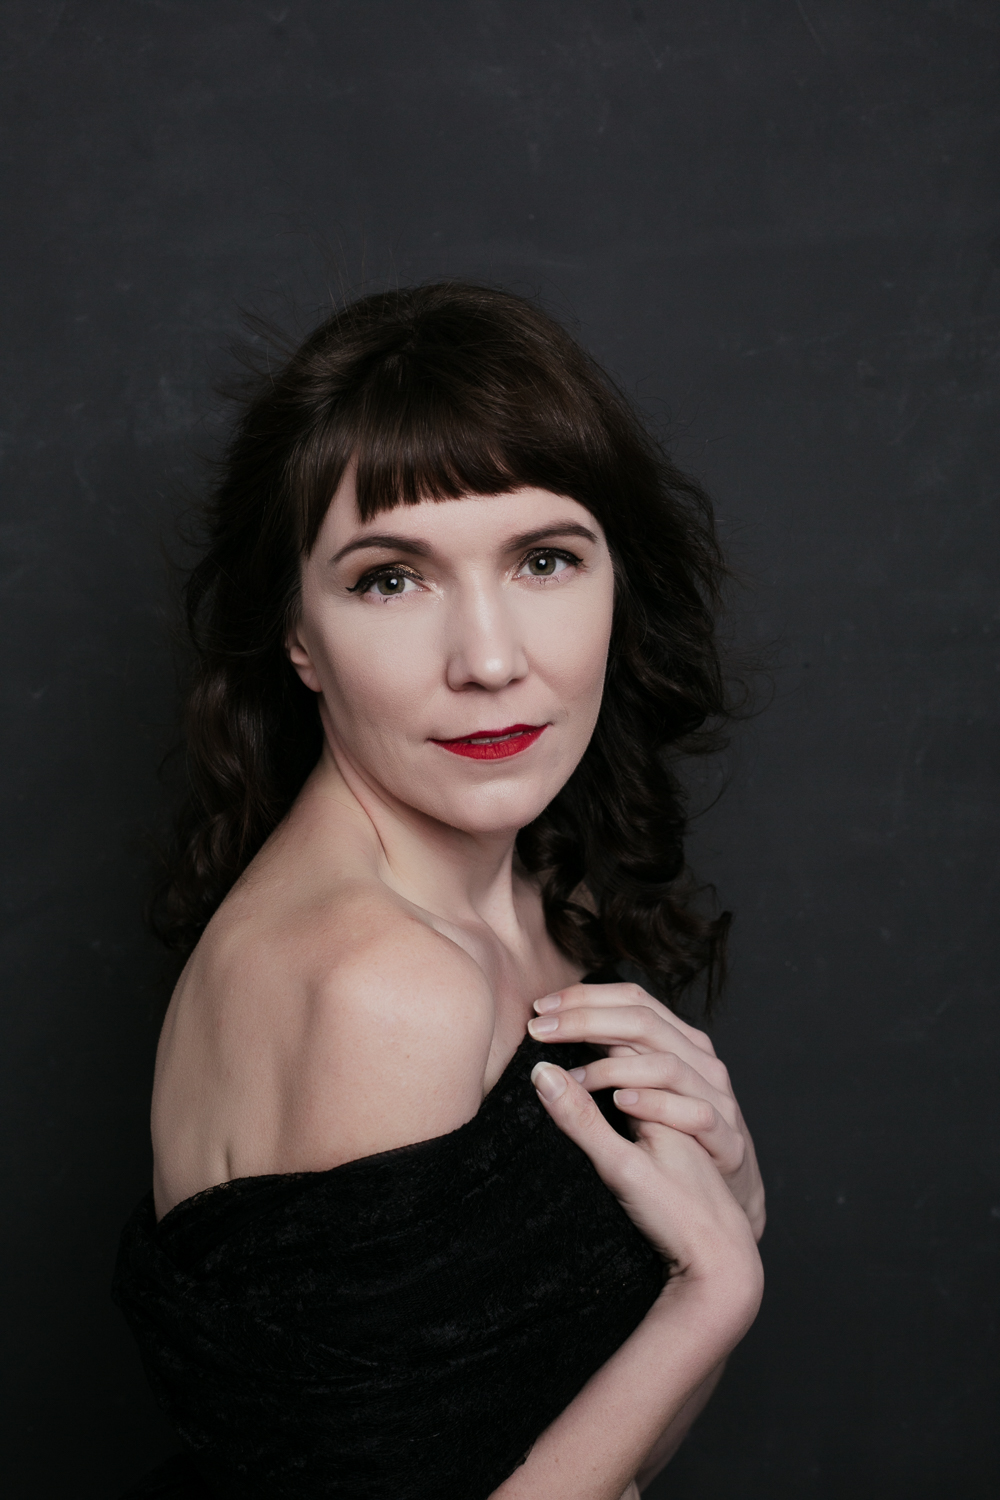 studio portrait of a woman in red lipstick in a contemporary beauty style